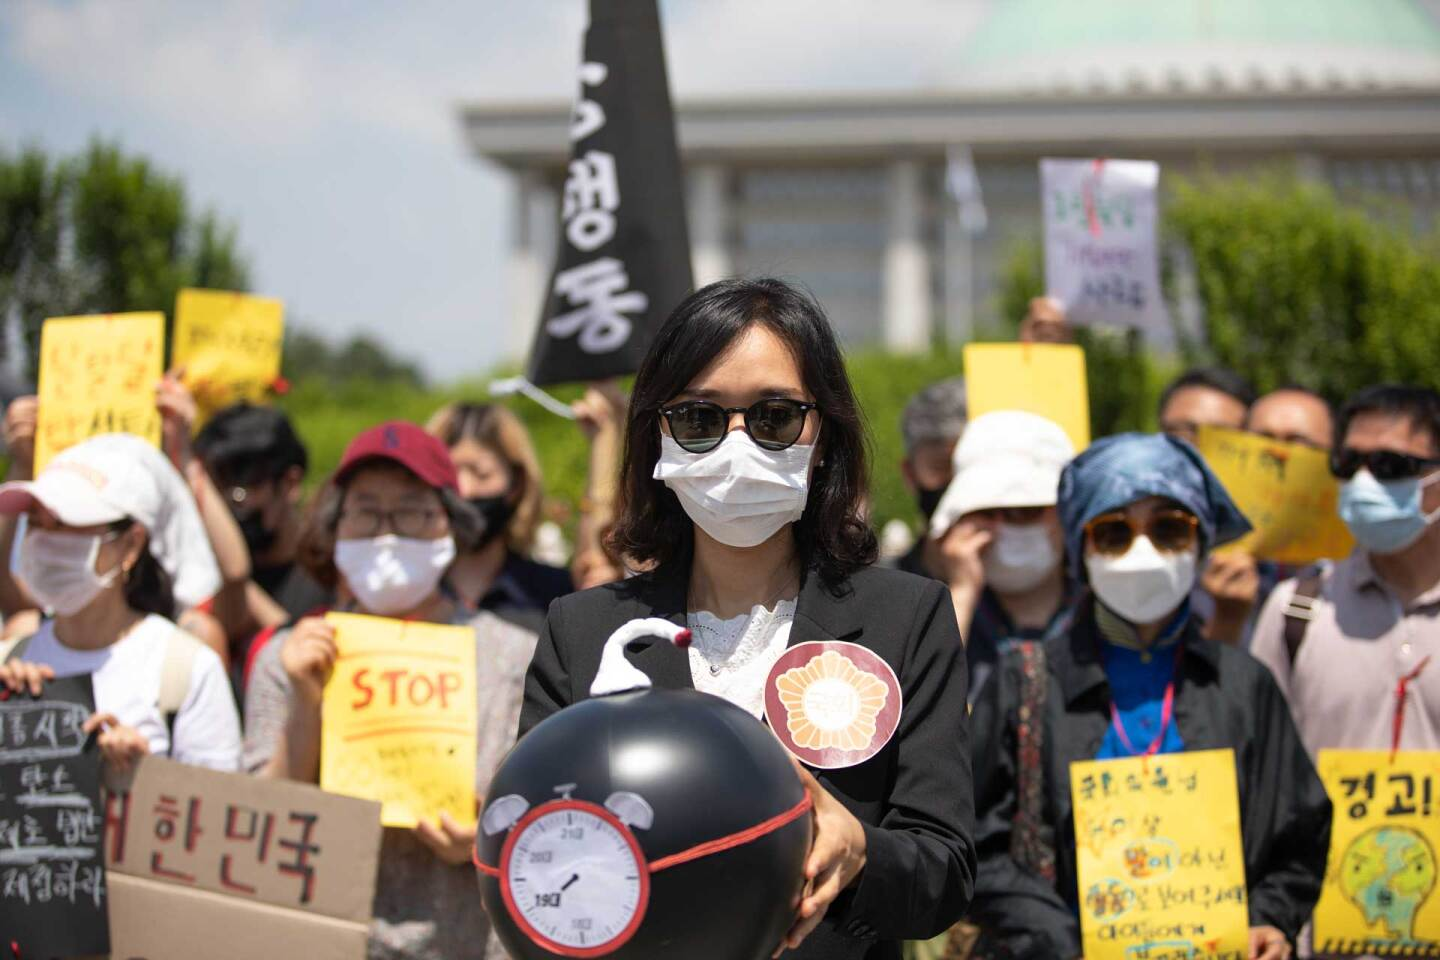 A demonstrator in Seoul, South Korea holds a time bomb symbolizing the climate crisis in June 2020. Demonstrators wear masks to protect themselves from the COVID-19 pandemic. |  Chris Jung/NurPhoto via Getty Images